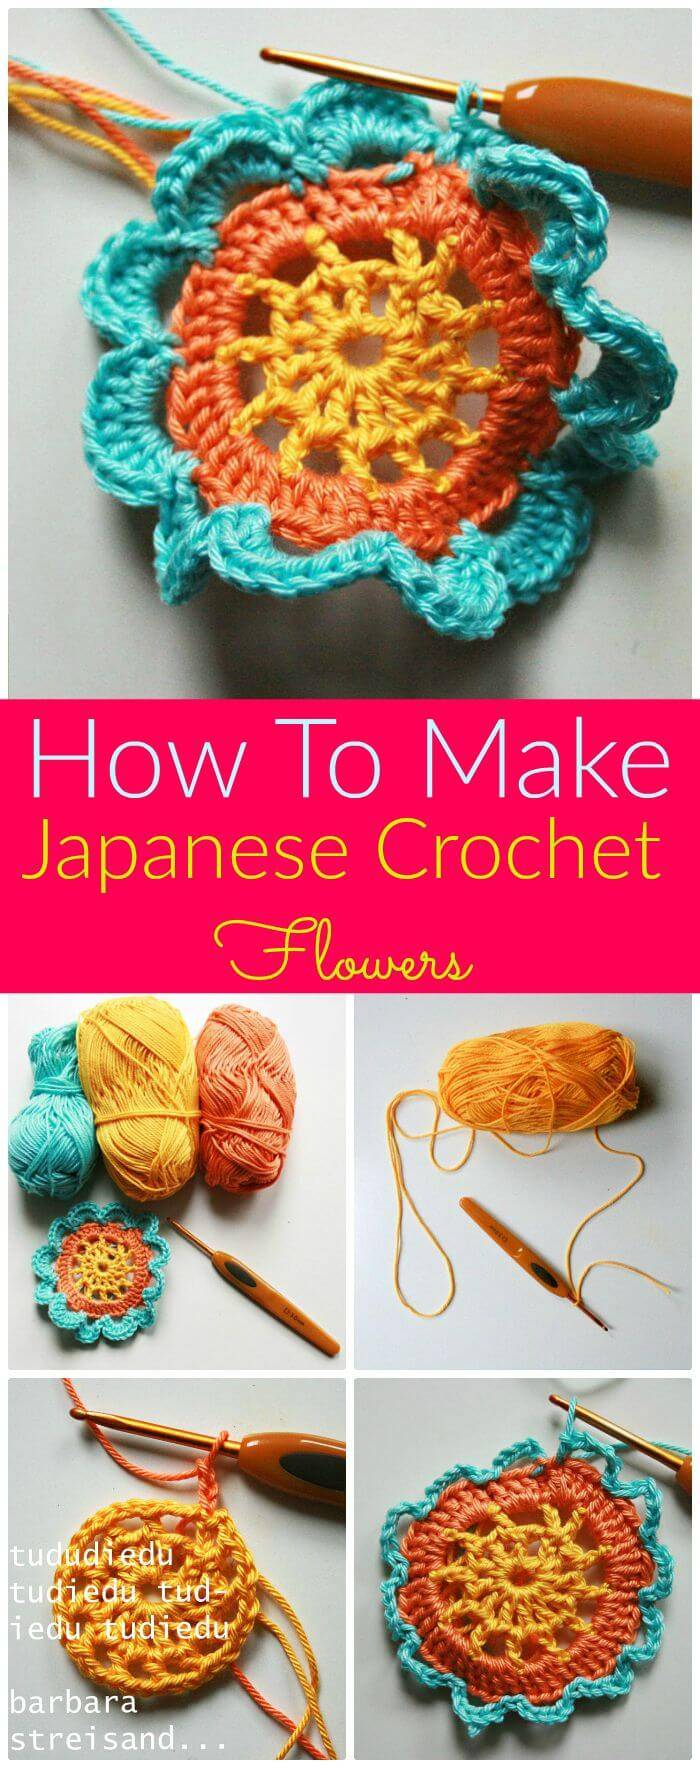 DIY Japanese Crochet Flowers-Free Crochet Pattern, Super easy and free crochet flower patterns! Easy crochet flower tutorials for beginners!